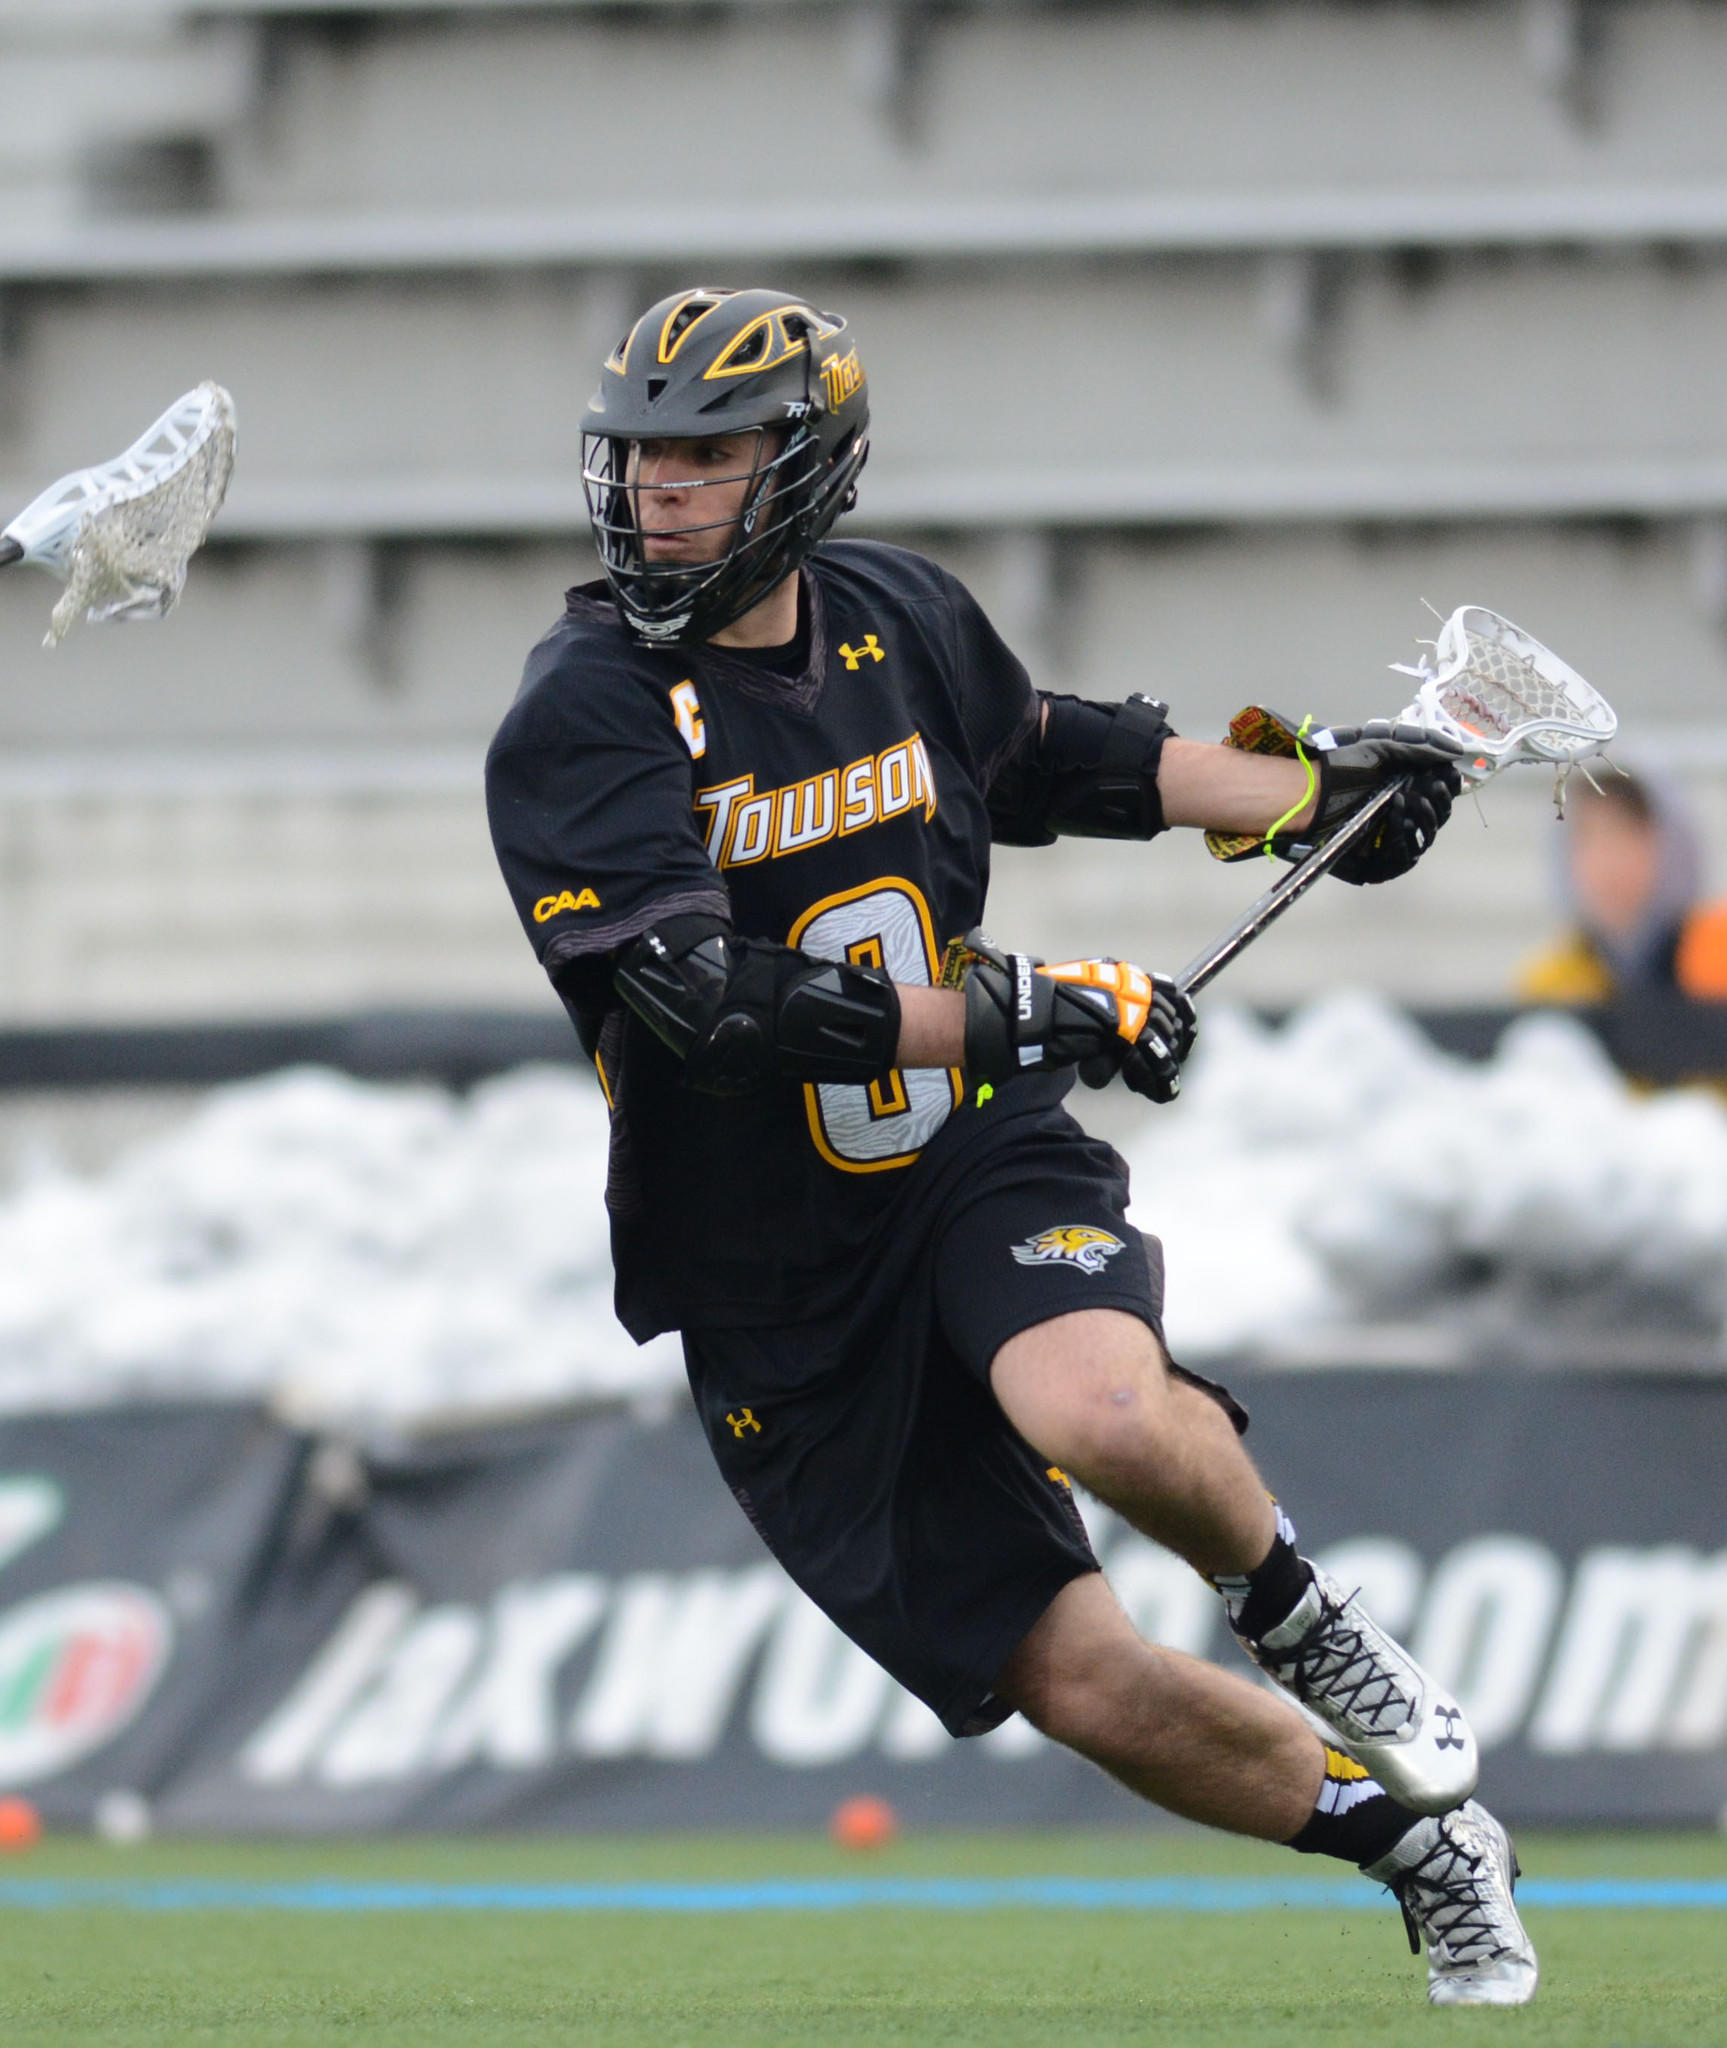 Towson attackman Thomas DeNapoli carries the ball in a 15-8 loss to Johns Hopkins at Homewood Field on Feb. 15.